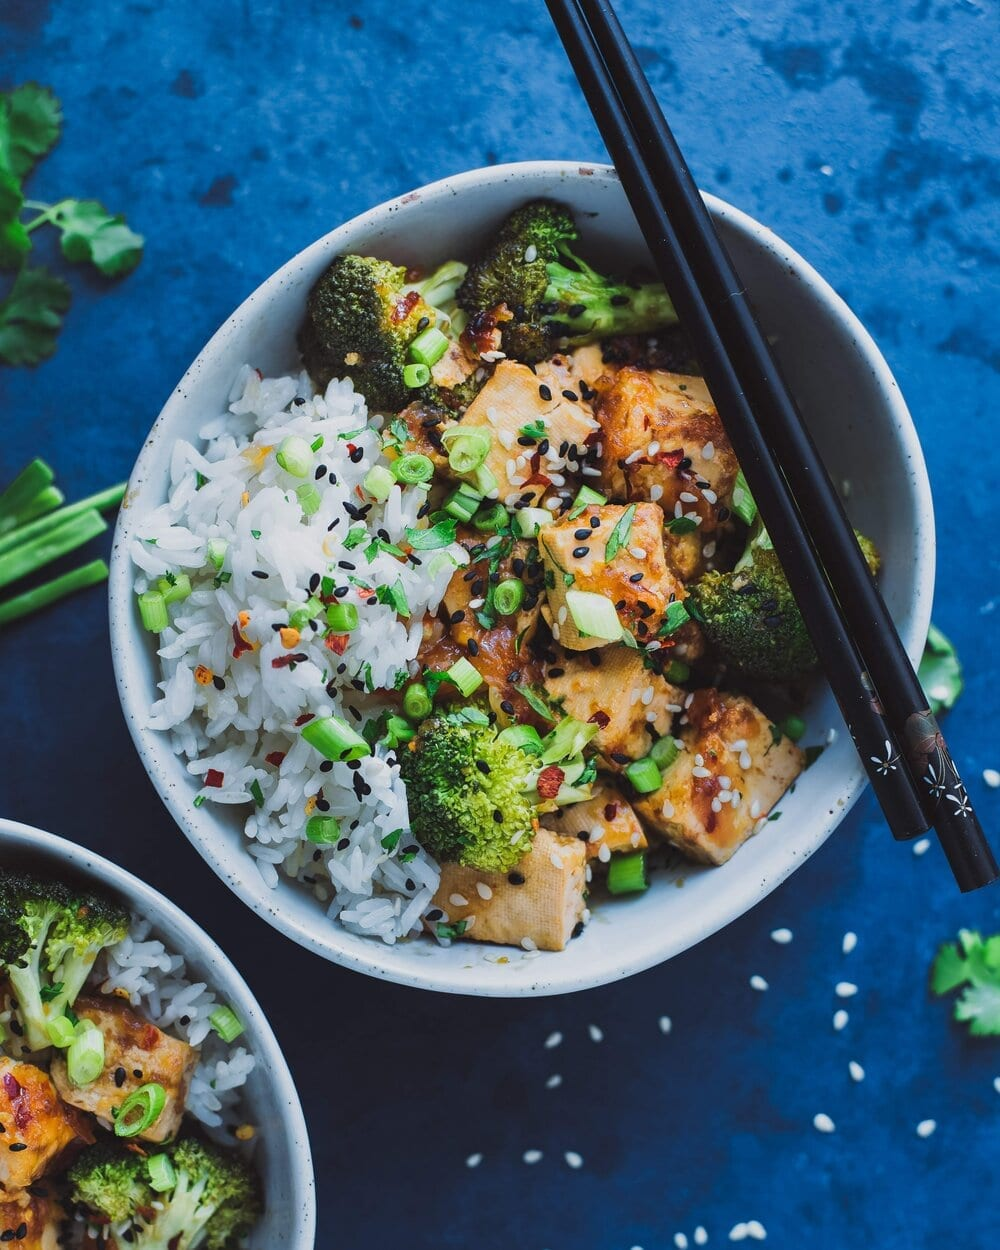 Chinese takeout style tofu 3 - edited (1 of 1).jpg